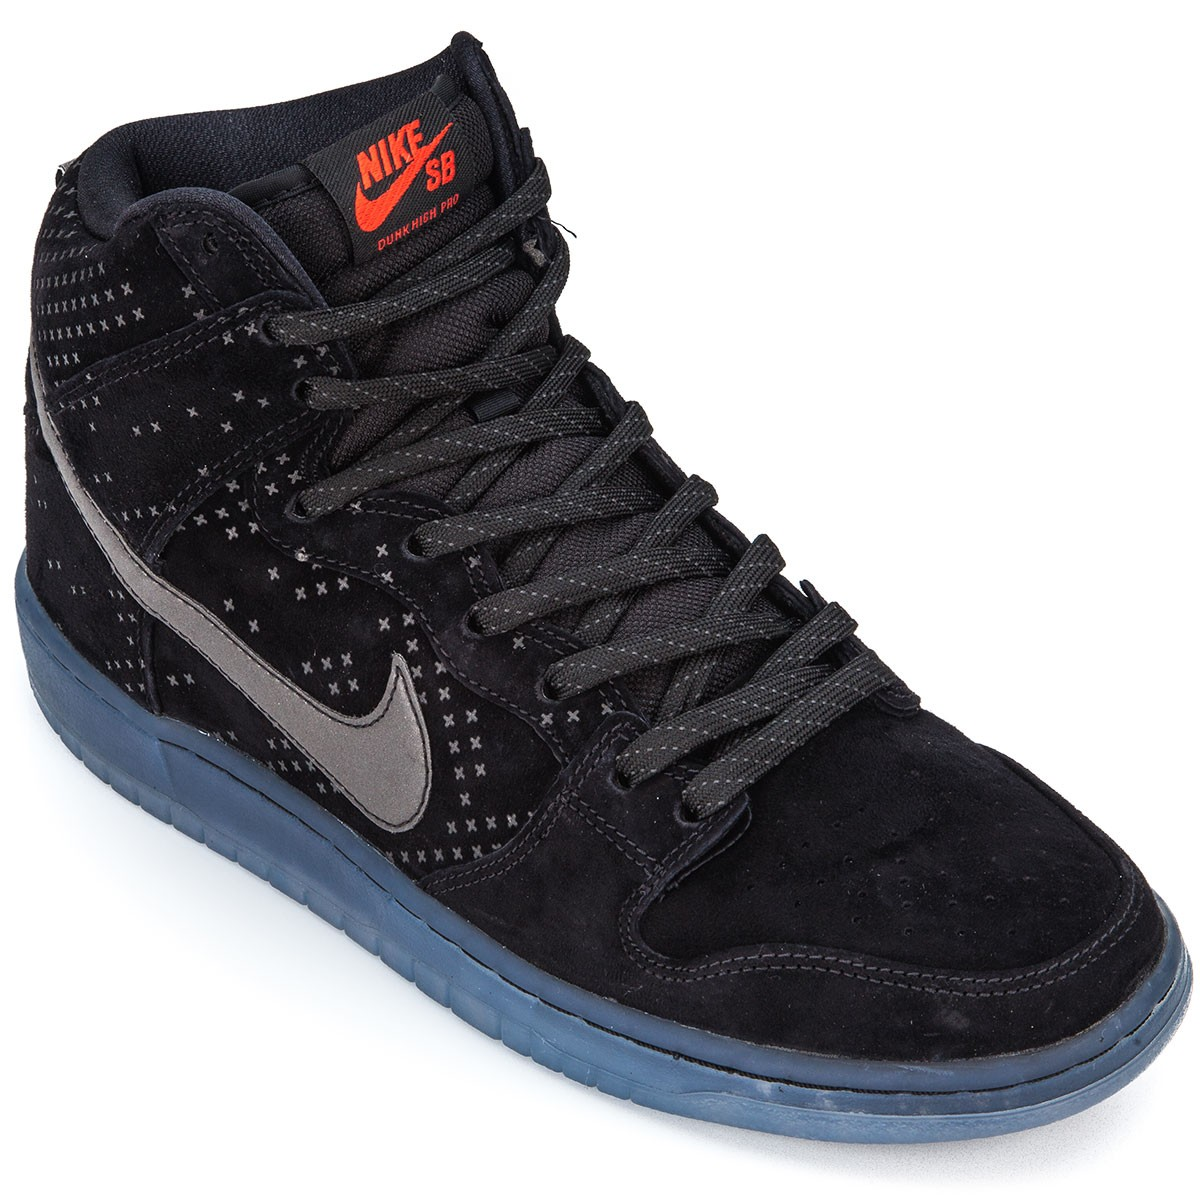 big sale 916ee 0e77f Nike Dunk High Premium Flash SB Shoes - Black Clear Black - 10.0